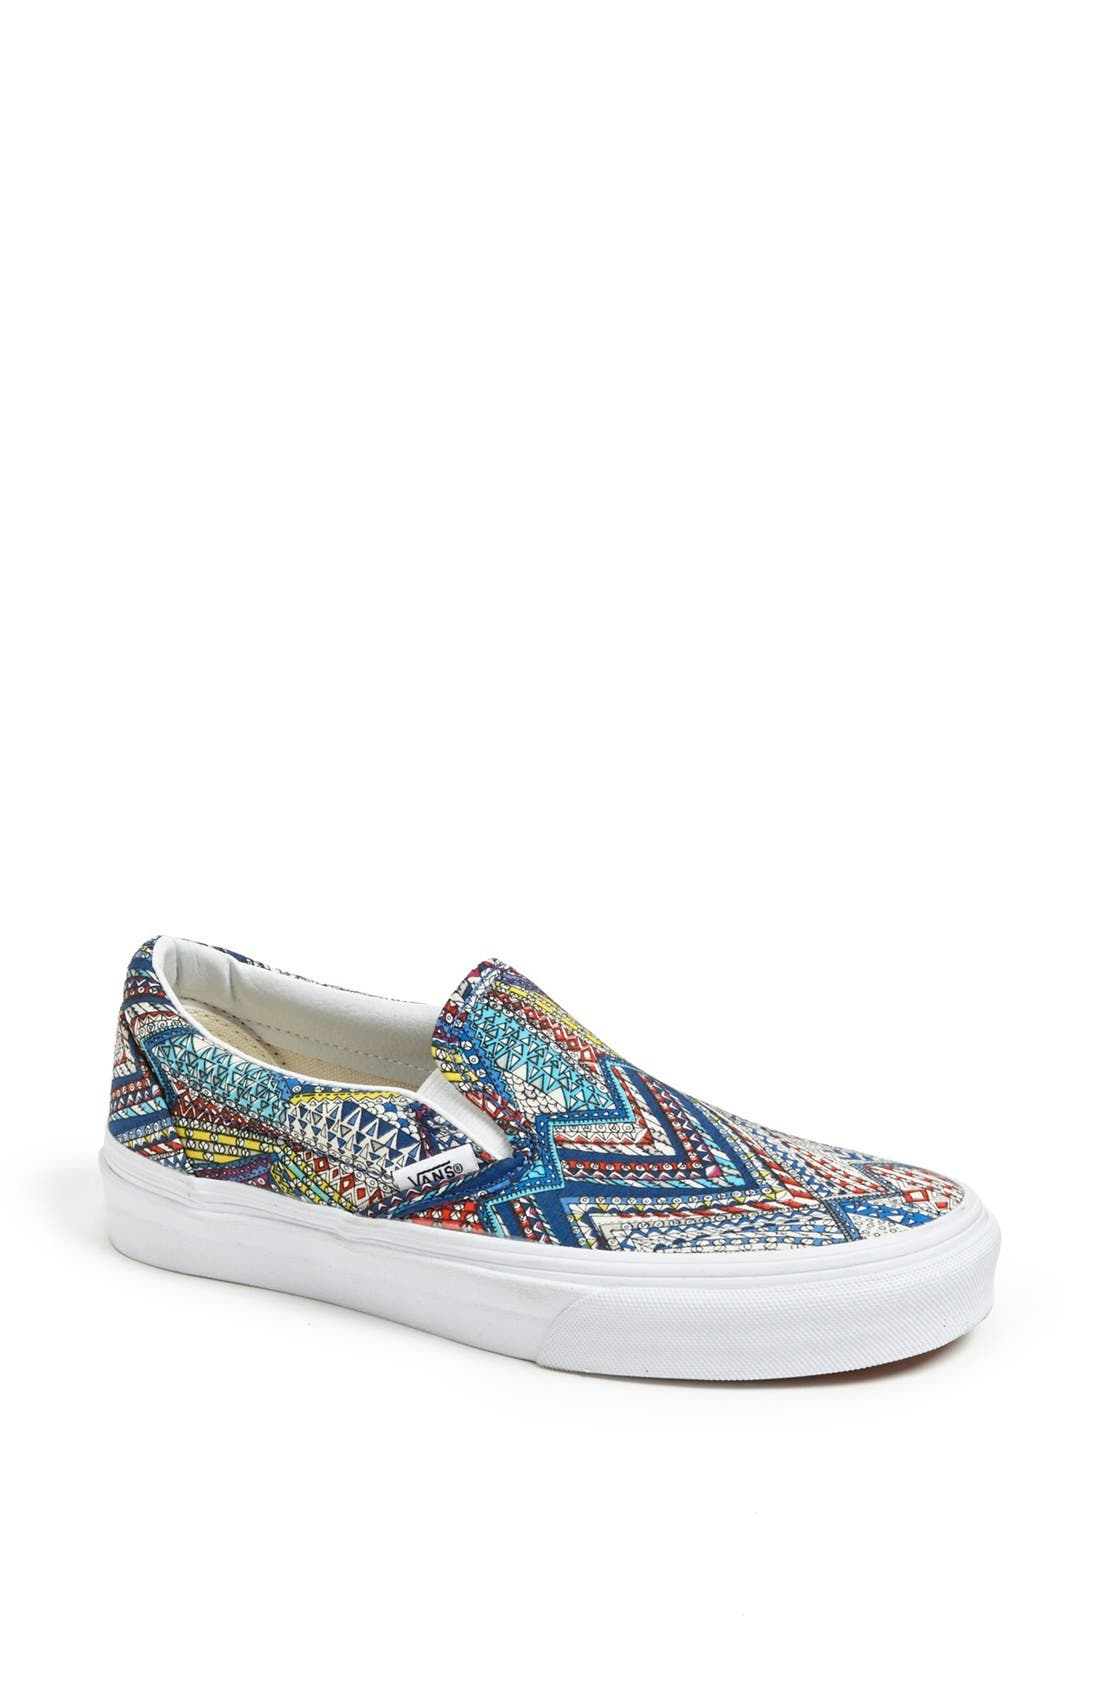 Alternate Image 1 Selected - Vans 'Classic - Abstract' Sneaker (Women)